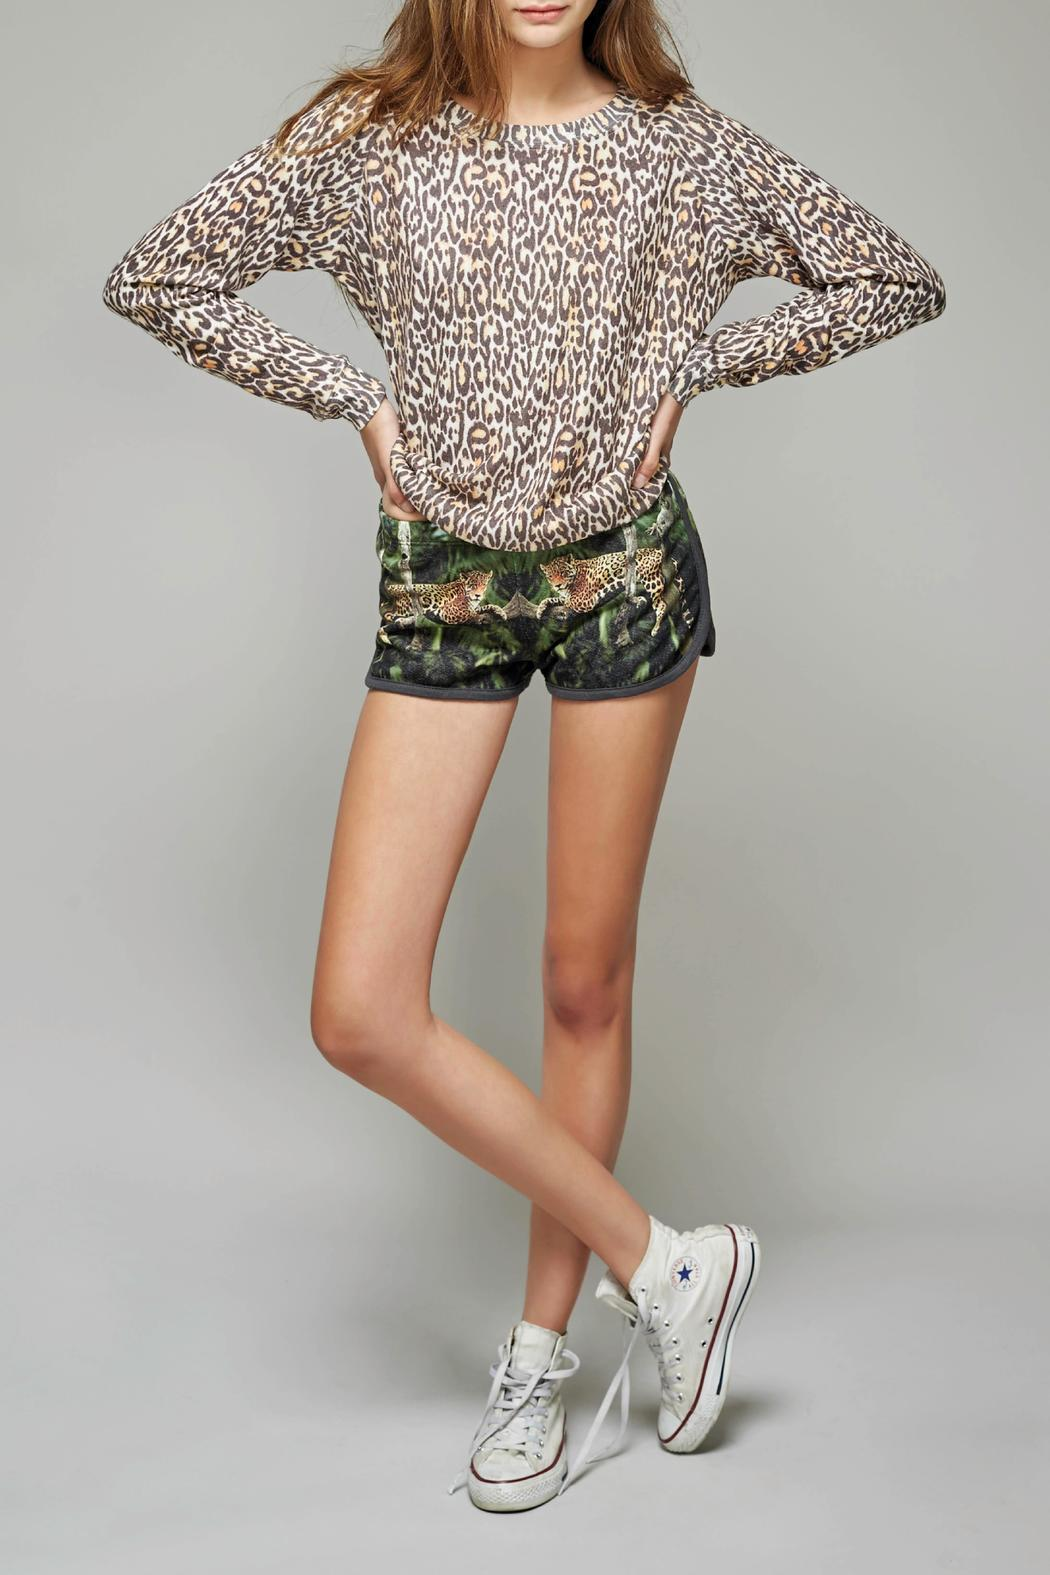 All Things Fabulous Cheetah Print Cozy Sweater - Front Full Image